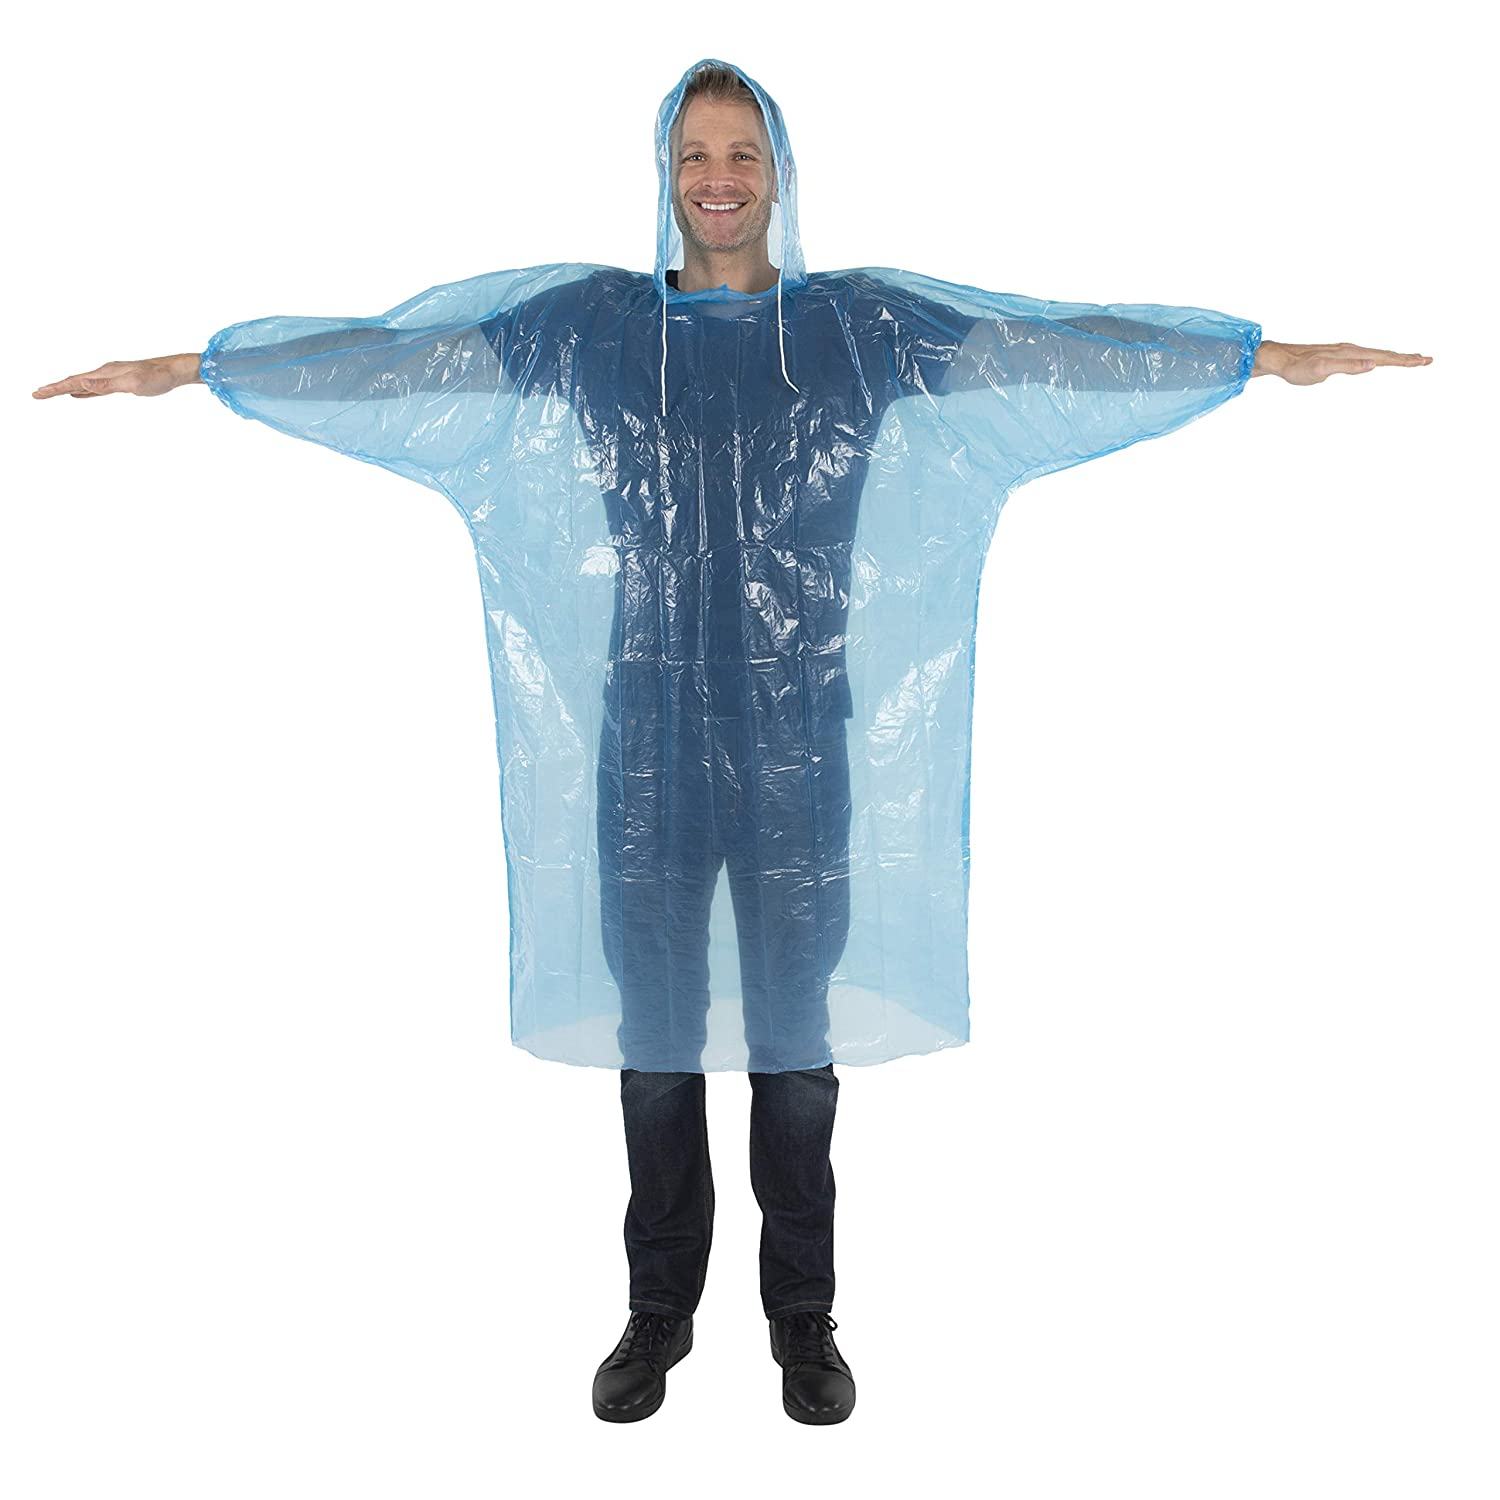 Disposable Extra Thick Heavy Duty Emergency Ponchos Wealers Rain Poncho for Adults Bulk Pack for Men Women /& Teens Reusable /& Waterproof Hood Strings /& Sleeves Outfit for Camping Amusement Parks